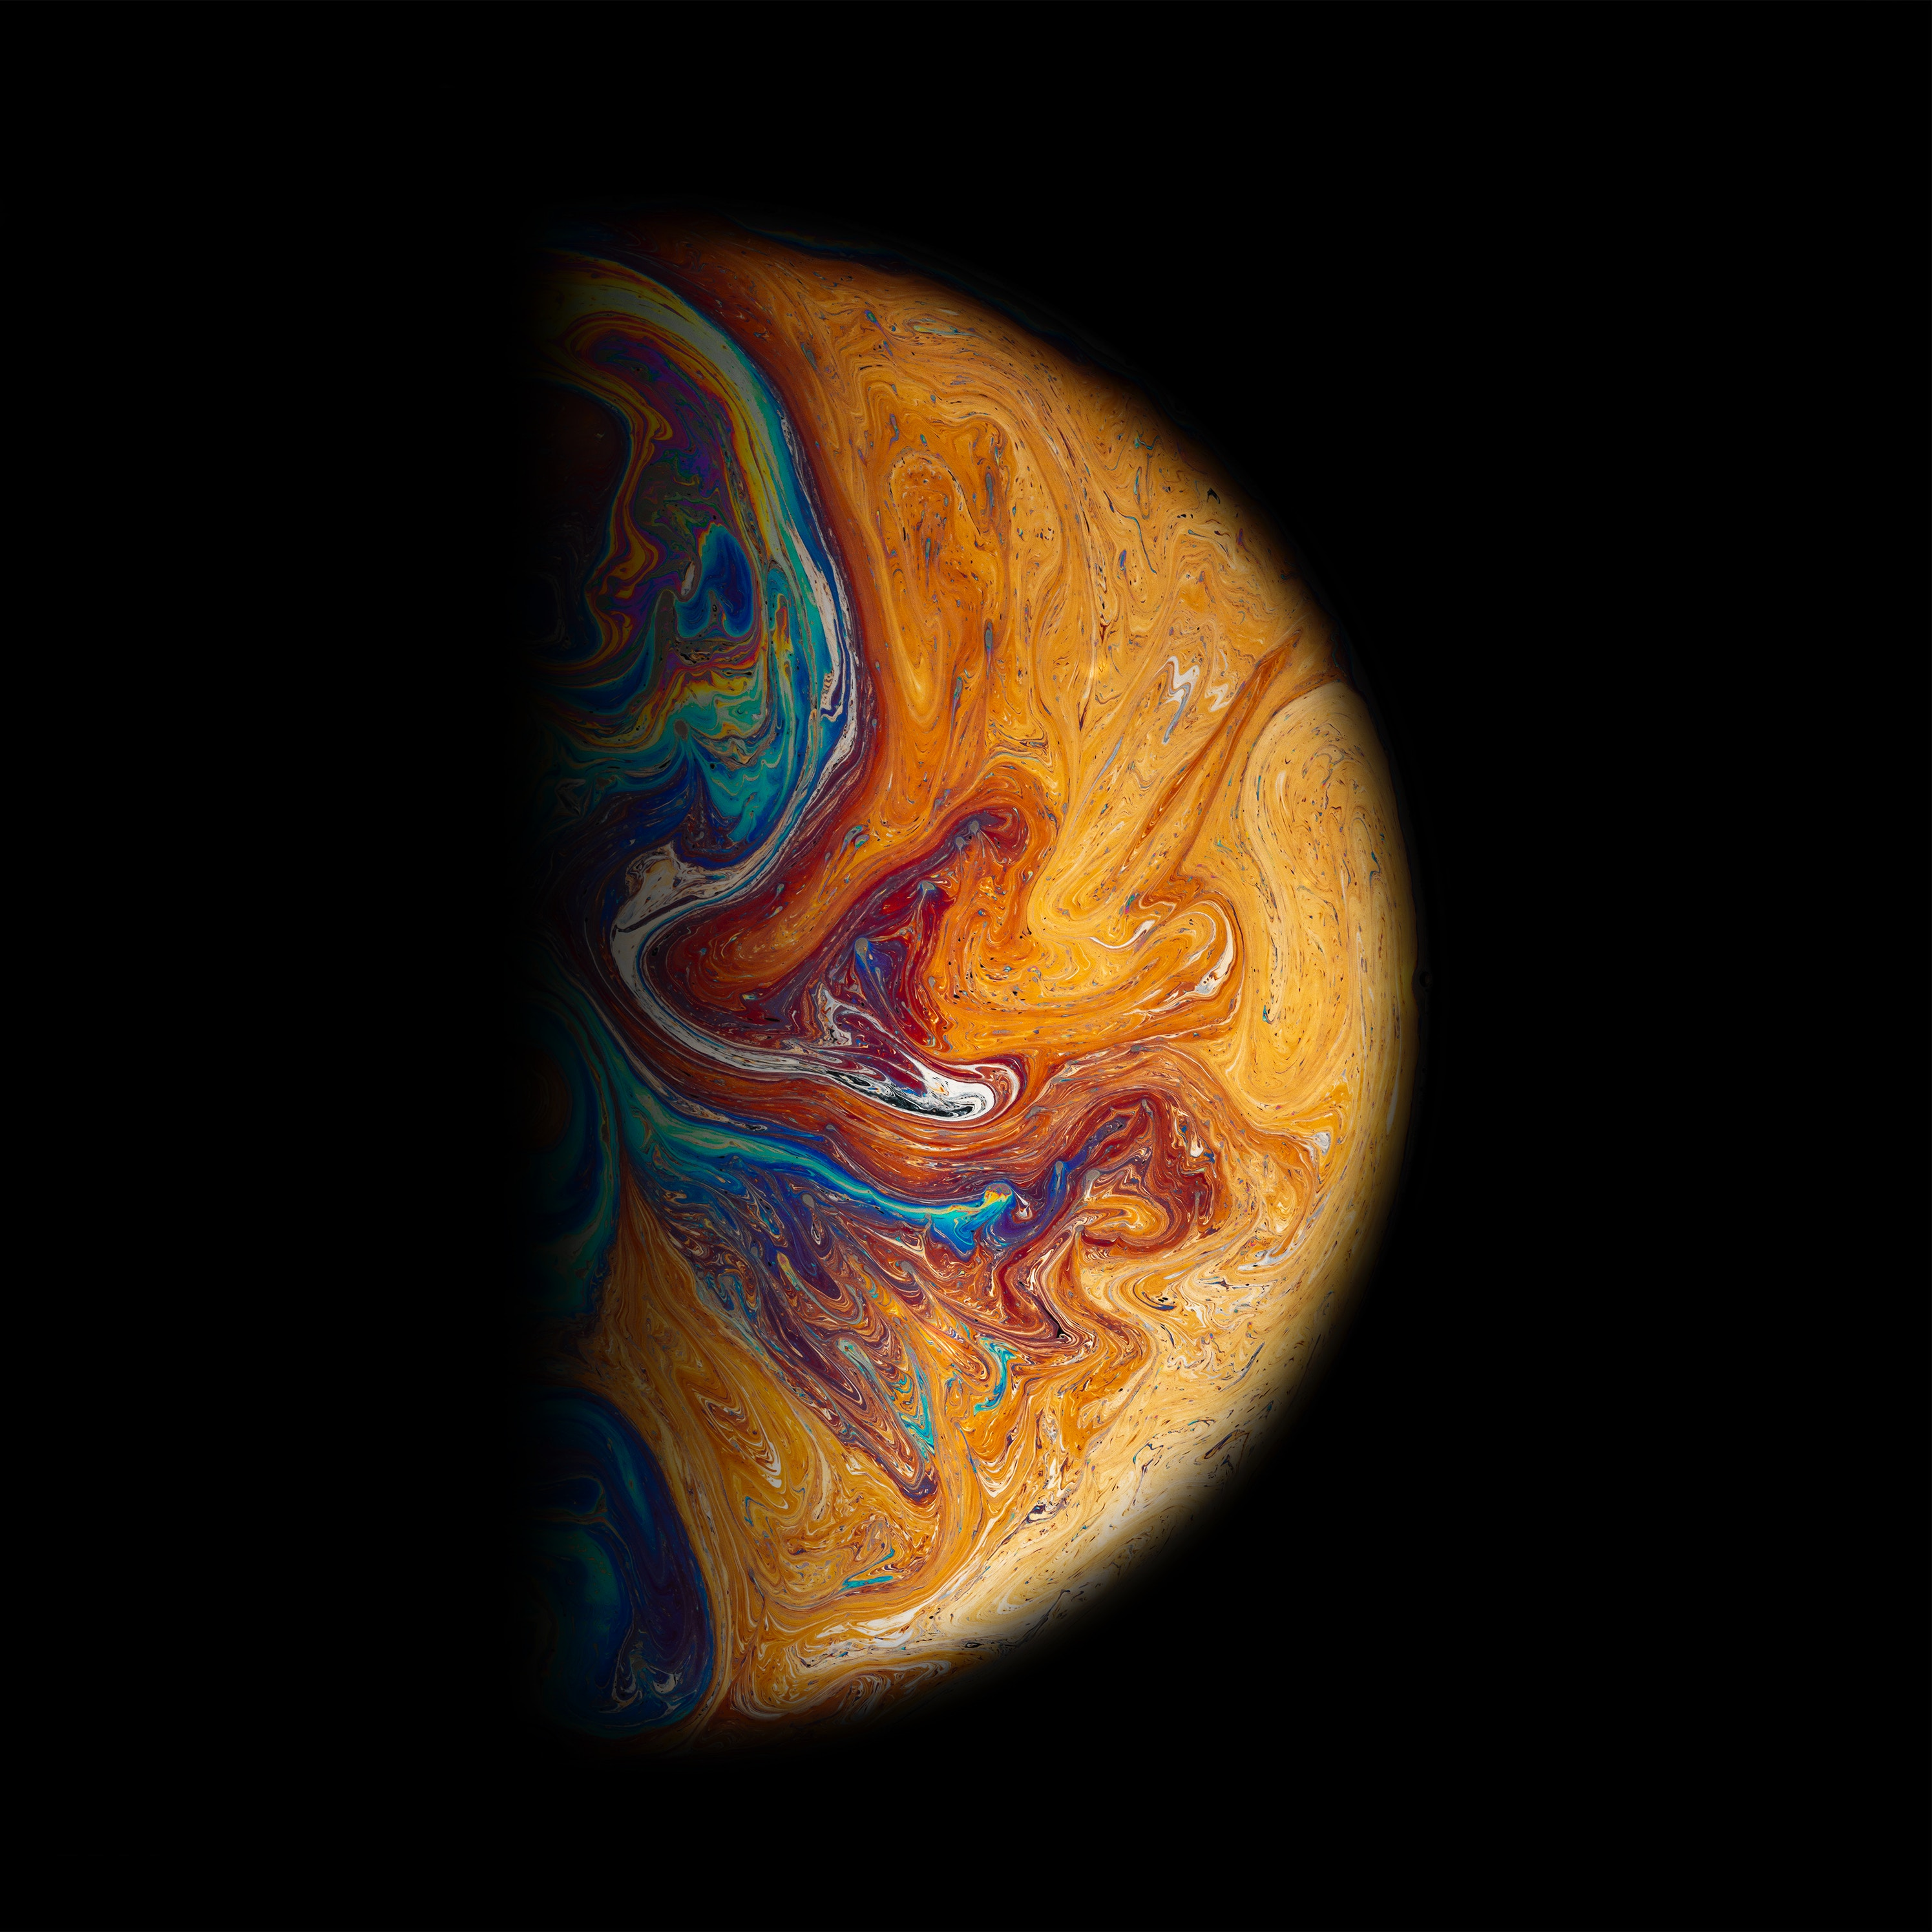 67190 download wallpaper Abstract, Ball, Planet, Multicolored, Motley, Paint, Stains, Spots screensavers and pictures for free